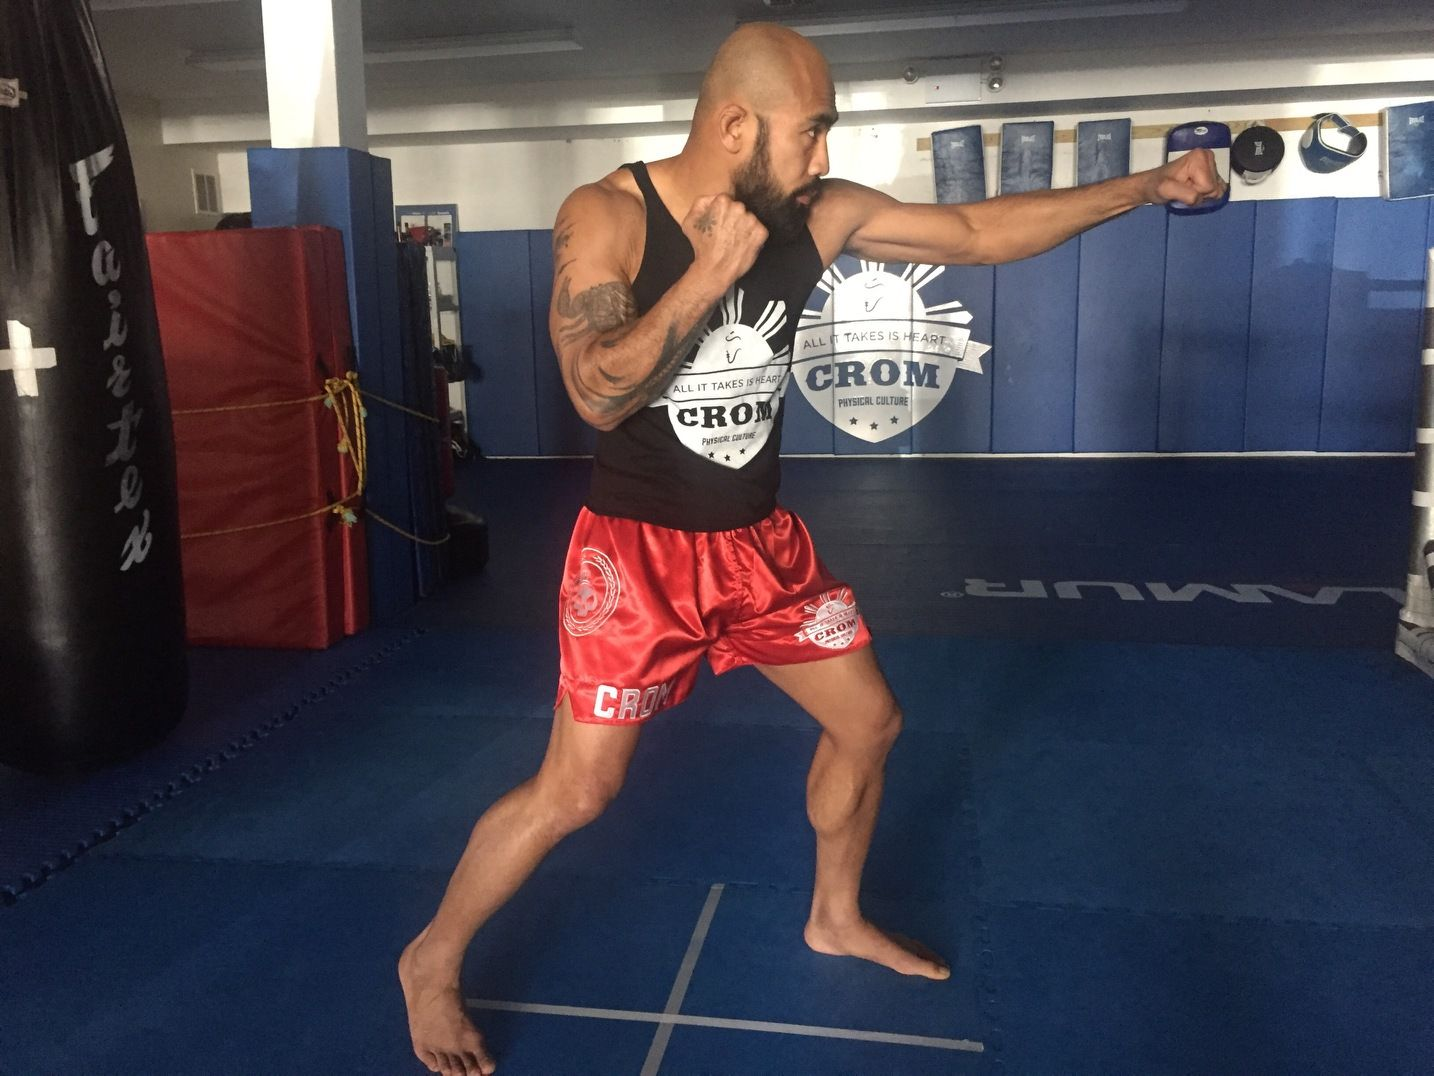 6 Steps to Great Footwork from Chris Romulo. Footwork can make all the difference in a fight, use these 6 steps to develop your footwork.